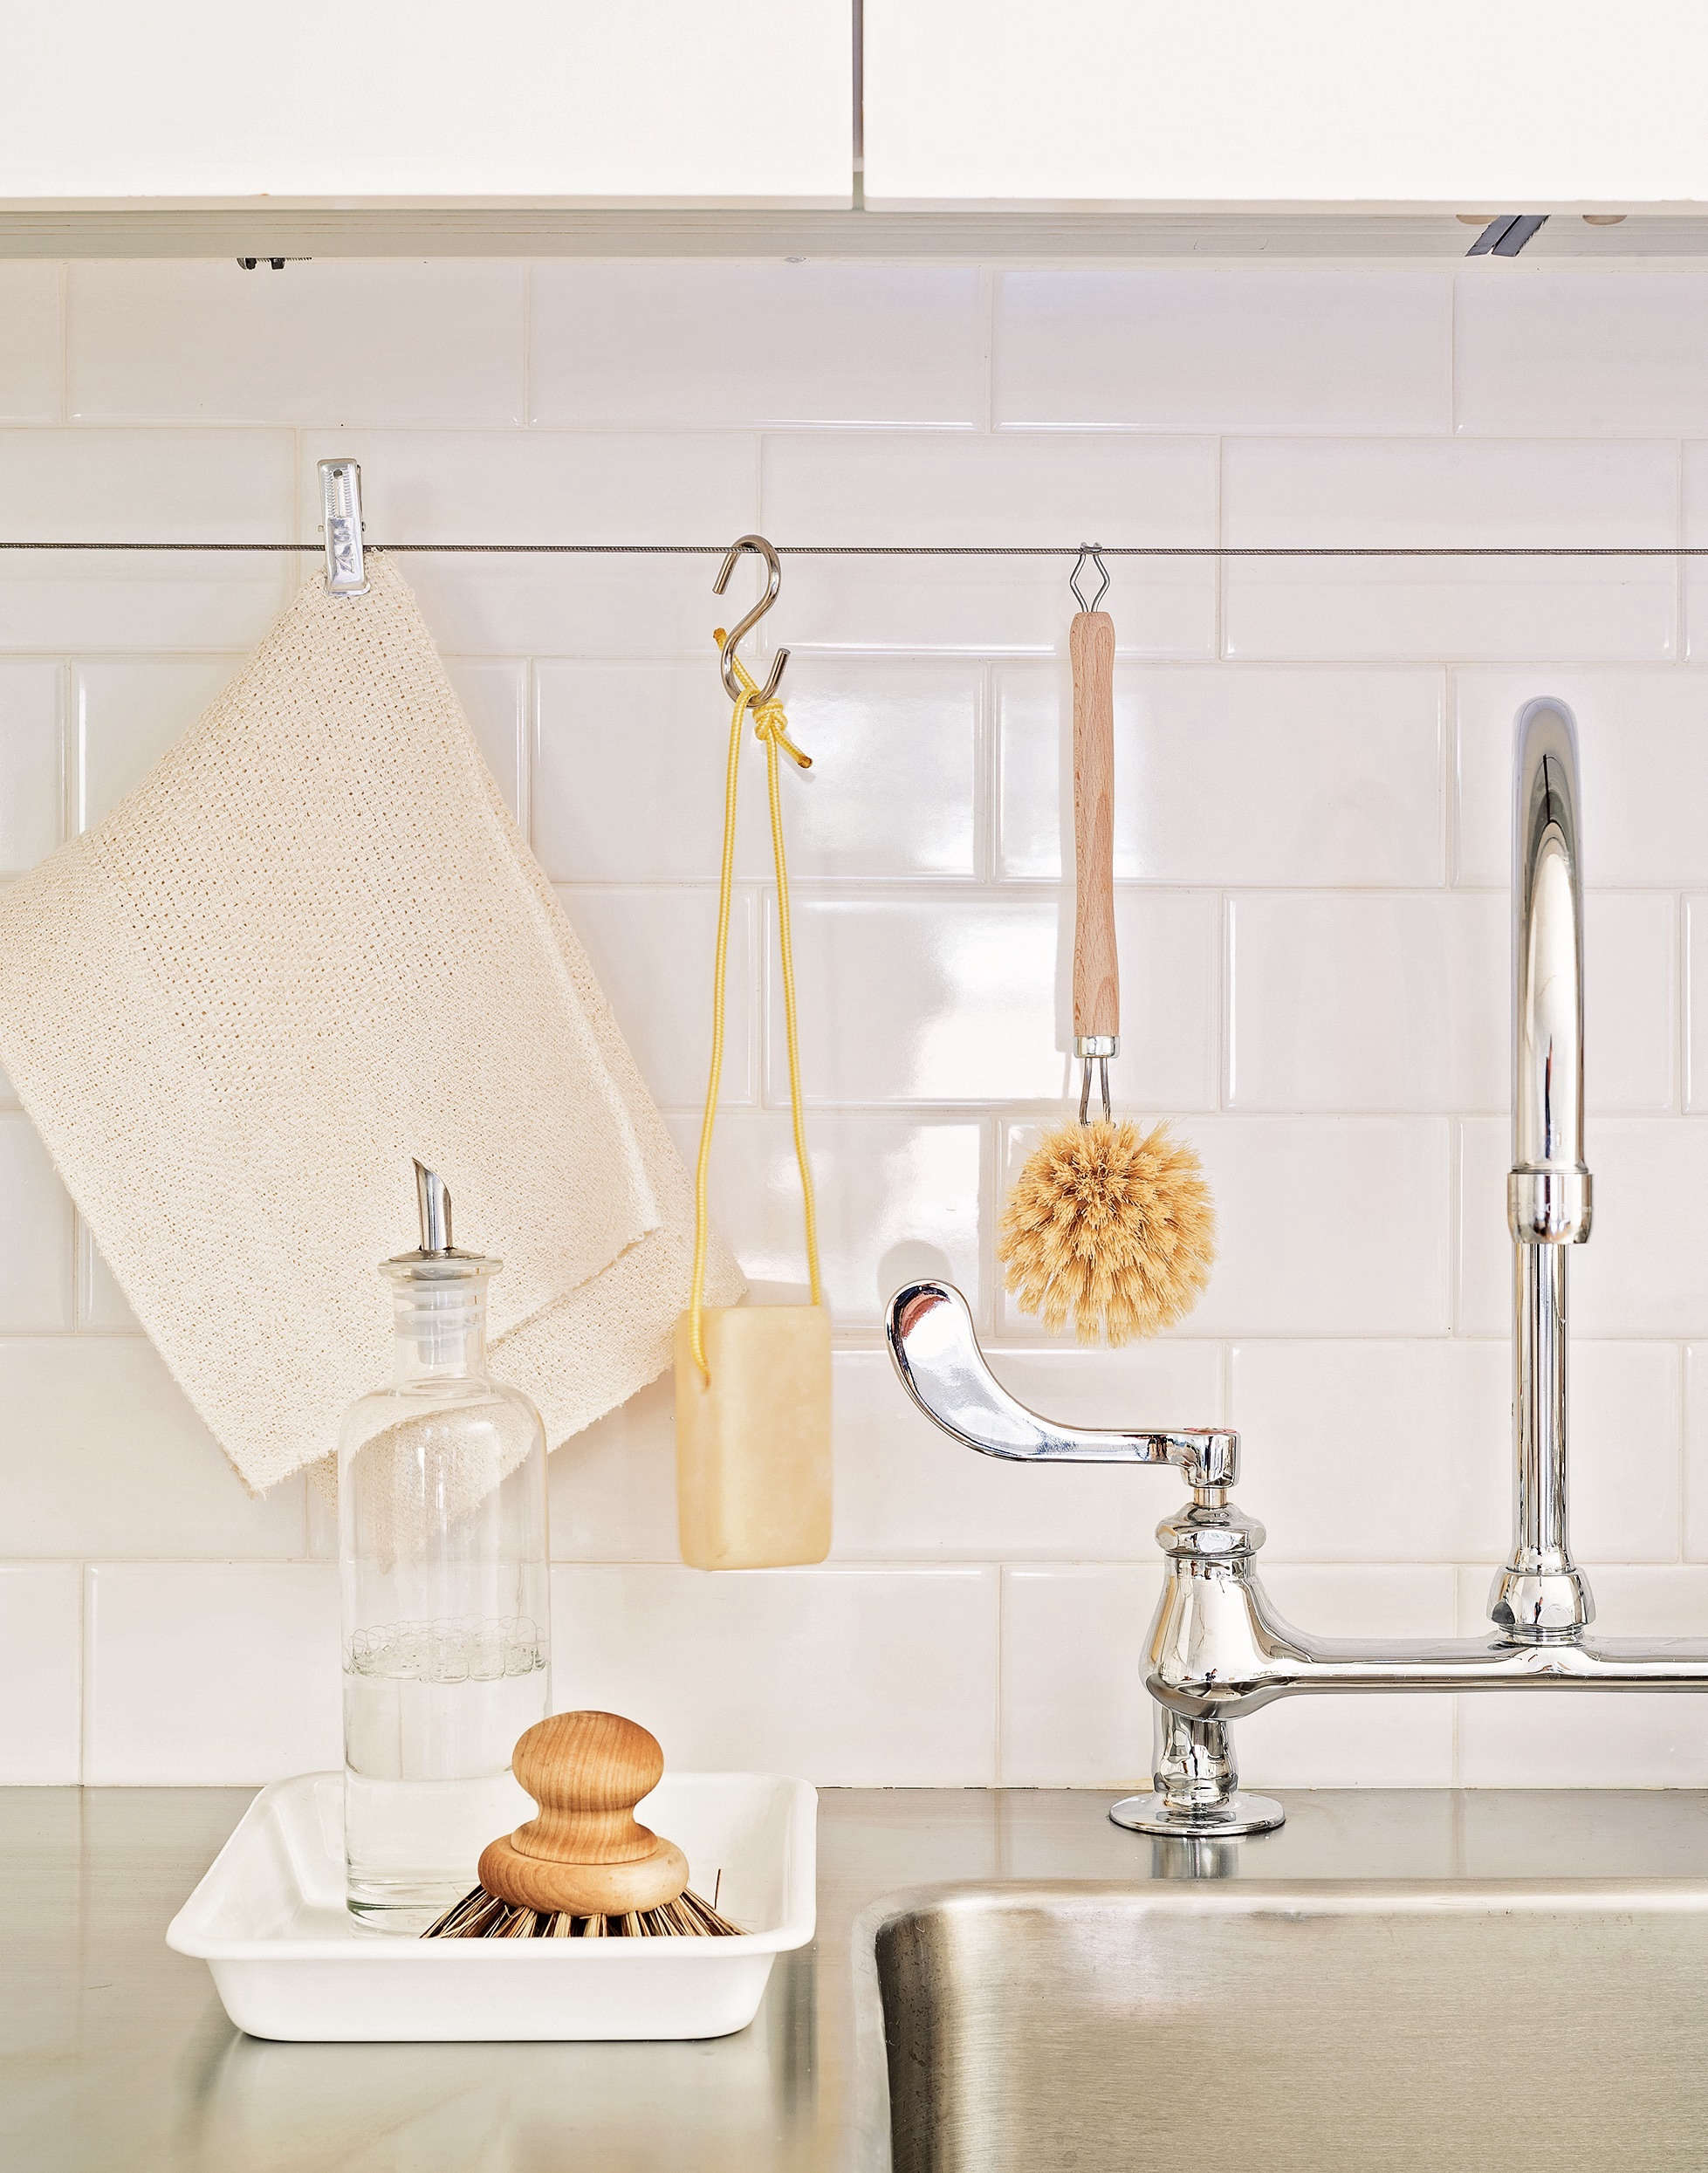 5 Space Saving Ideas To Steal From A Brooklyn Kitchen Ikea Hack Included